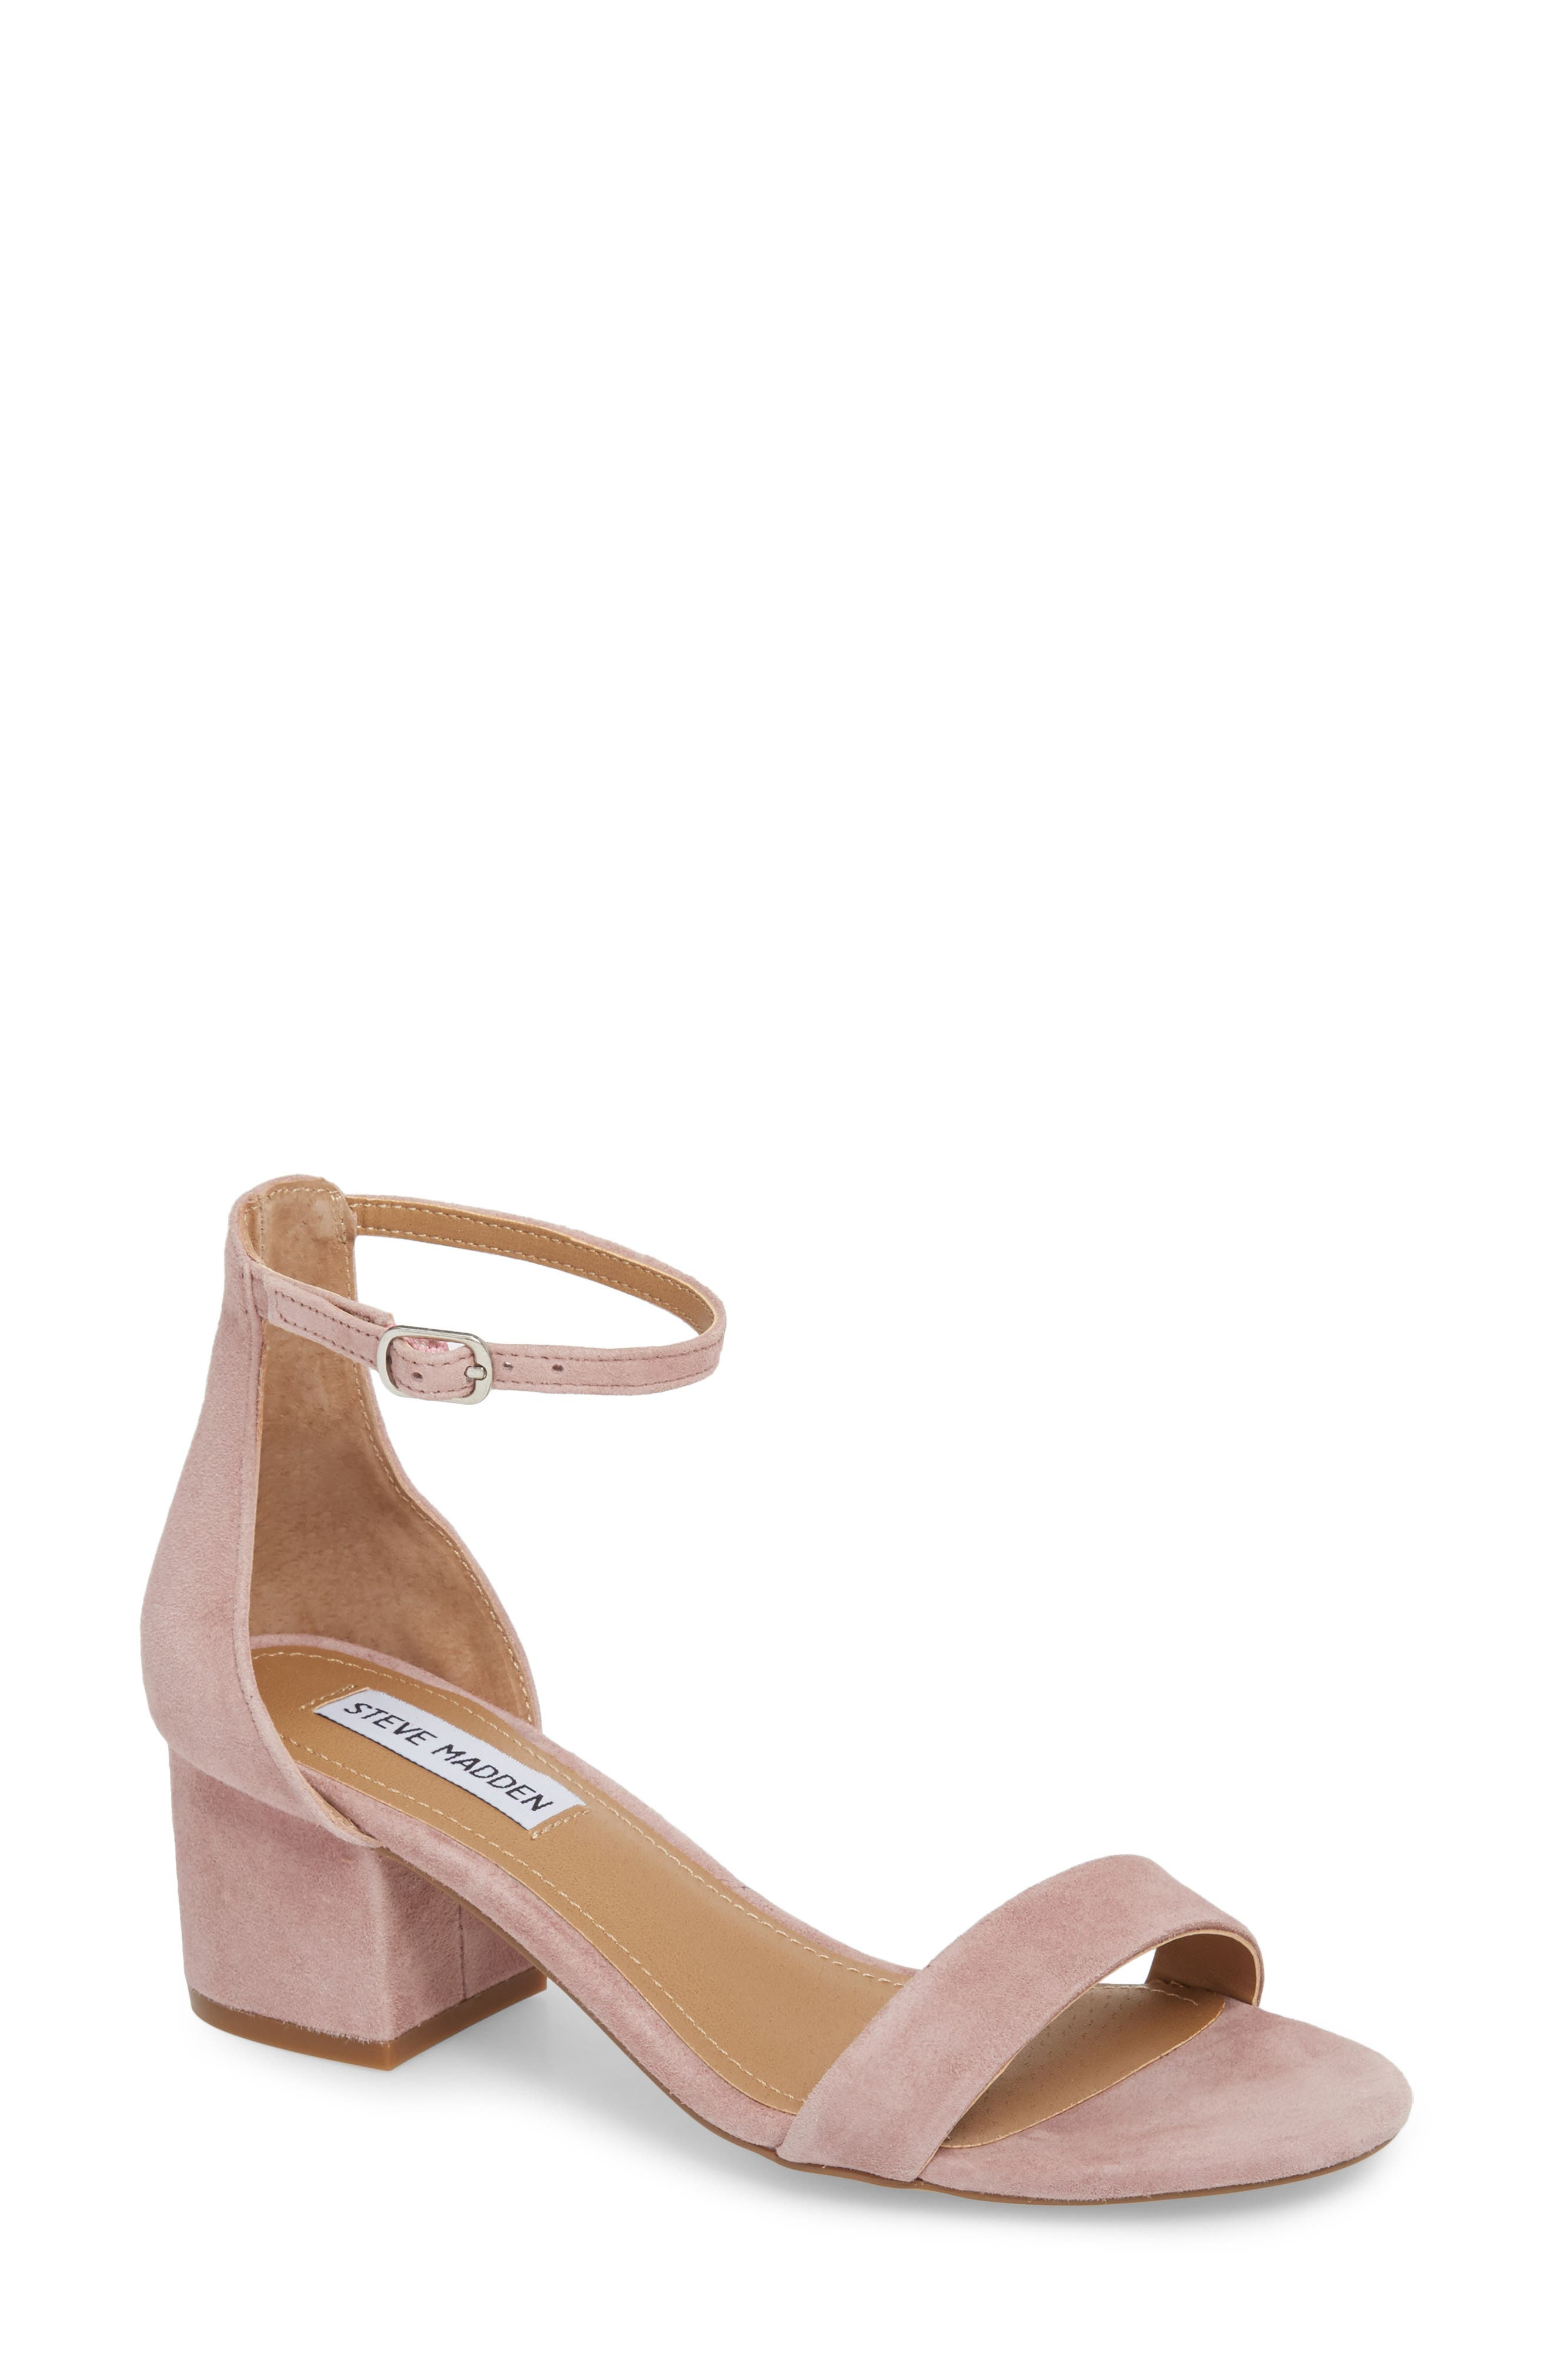 ,                             Irenee Ankle Strap Sandal,                             Main thumbnail 90, color,                             653